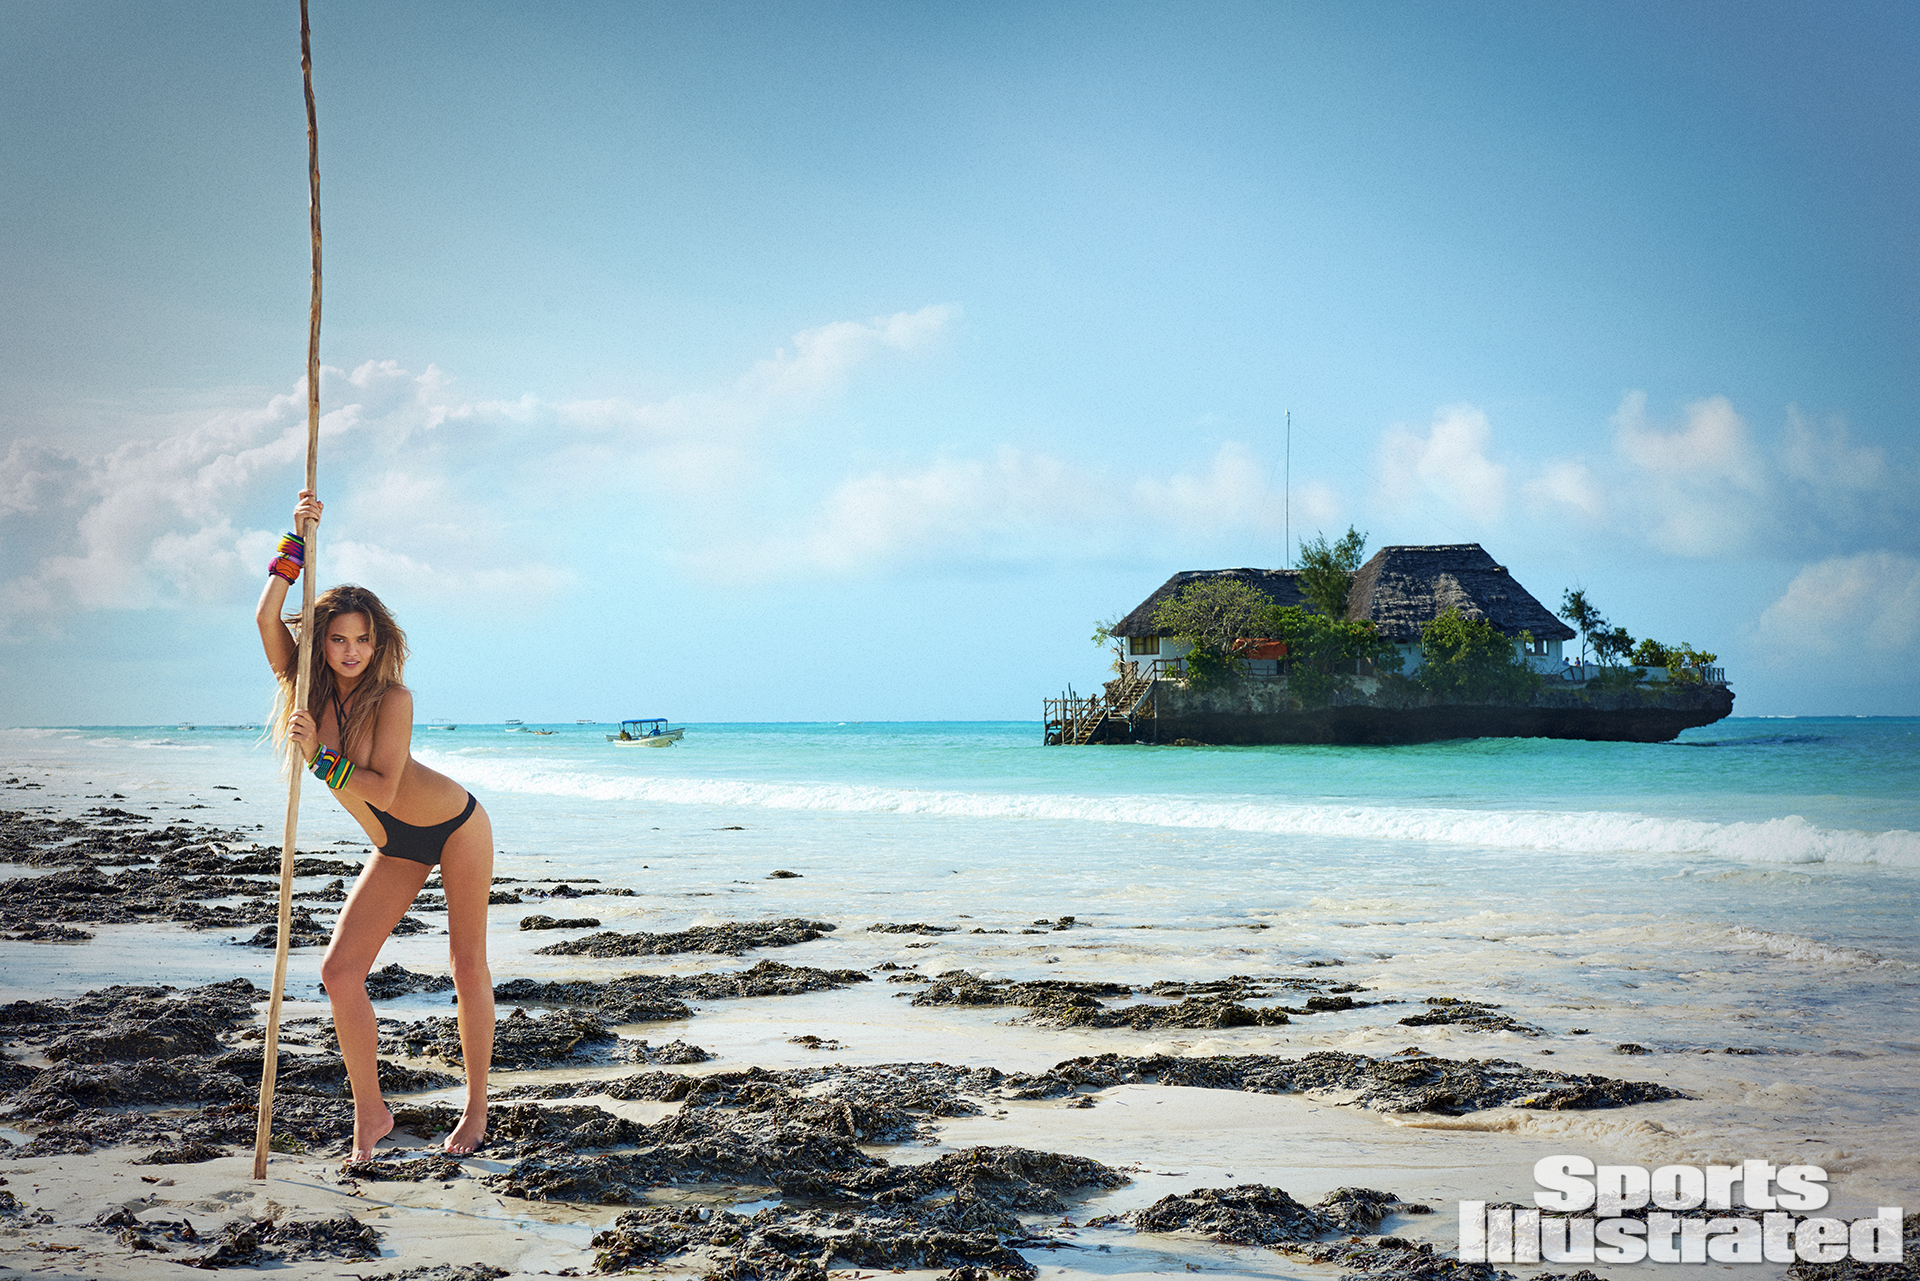 Chrissy Teigen was photographed by Ruven Afanador in Zanzibar. Swimsuit by Iztali Swim.